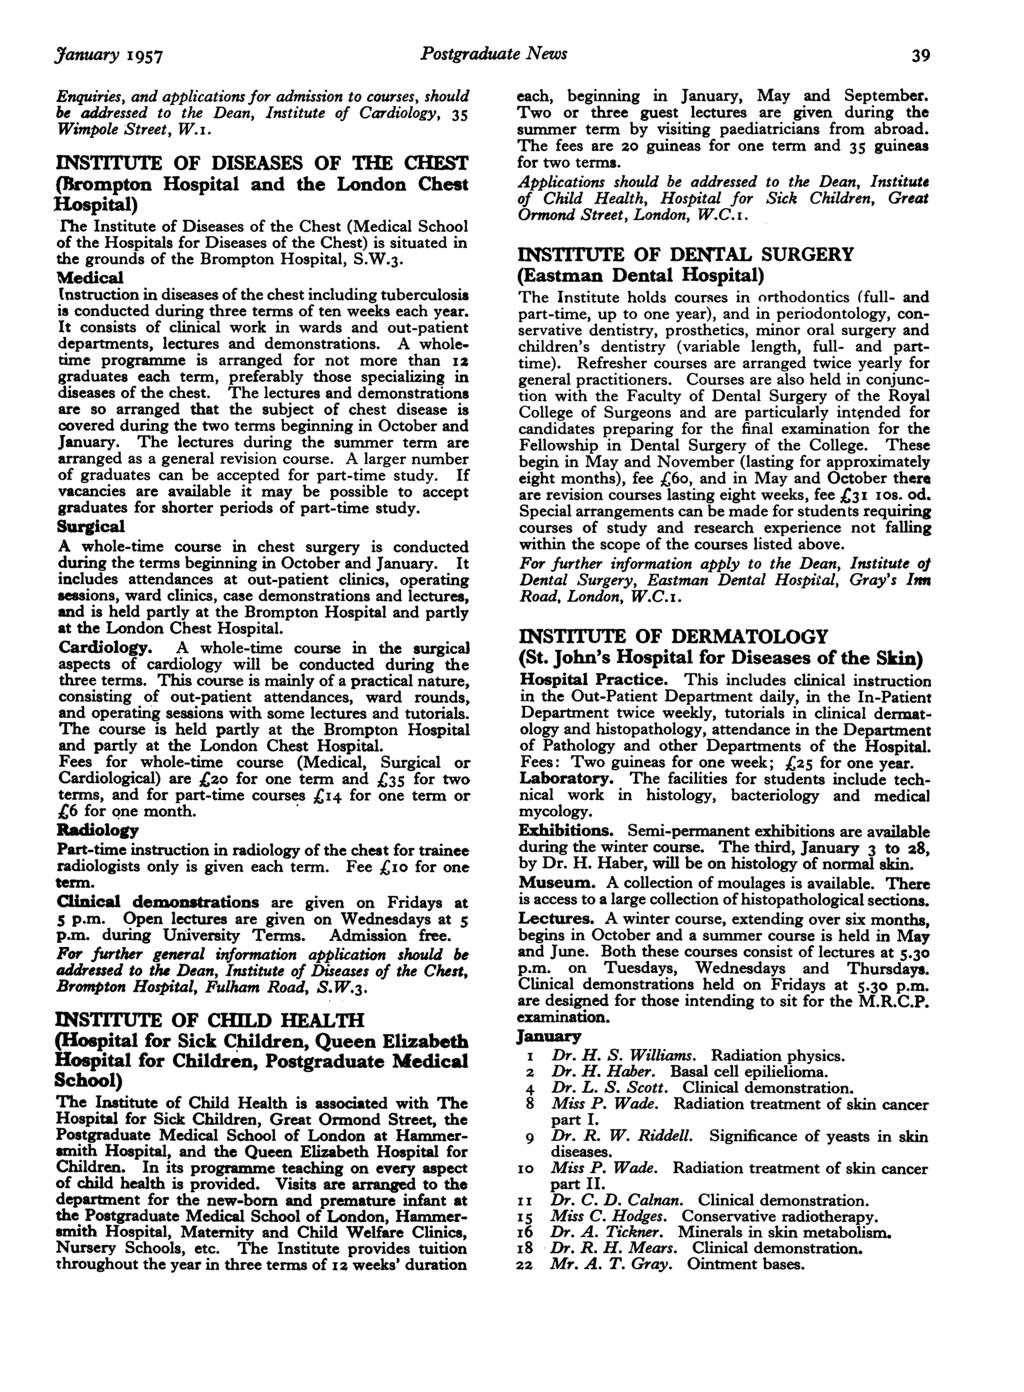 January 1957 Postgraduate News 39 Enquiries, and applications for admission to courses, should be addressed to the Dean, Institute of Cardiology, 35 Wimpole Street, W.